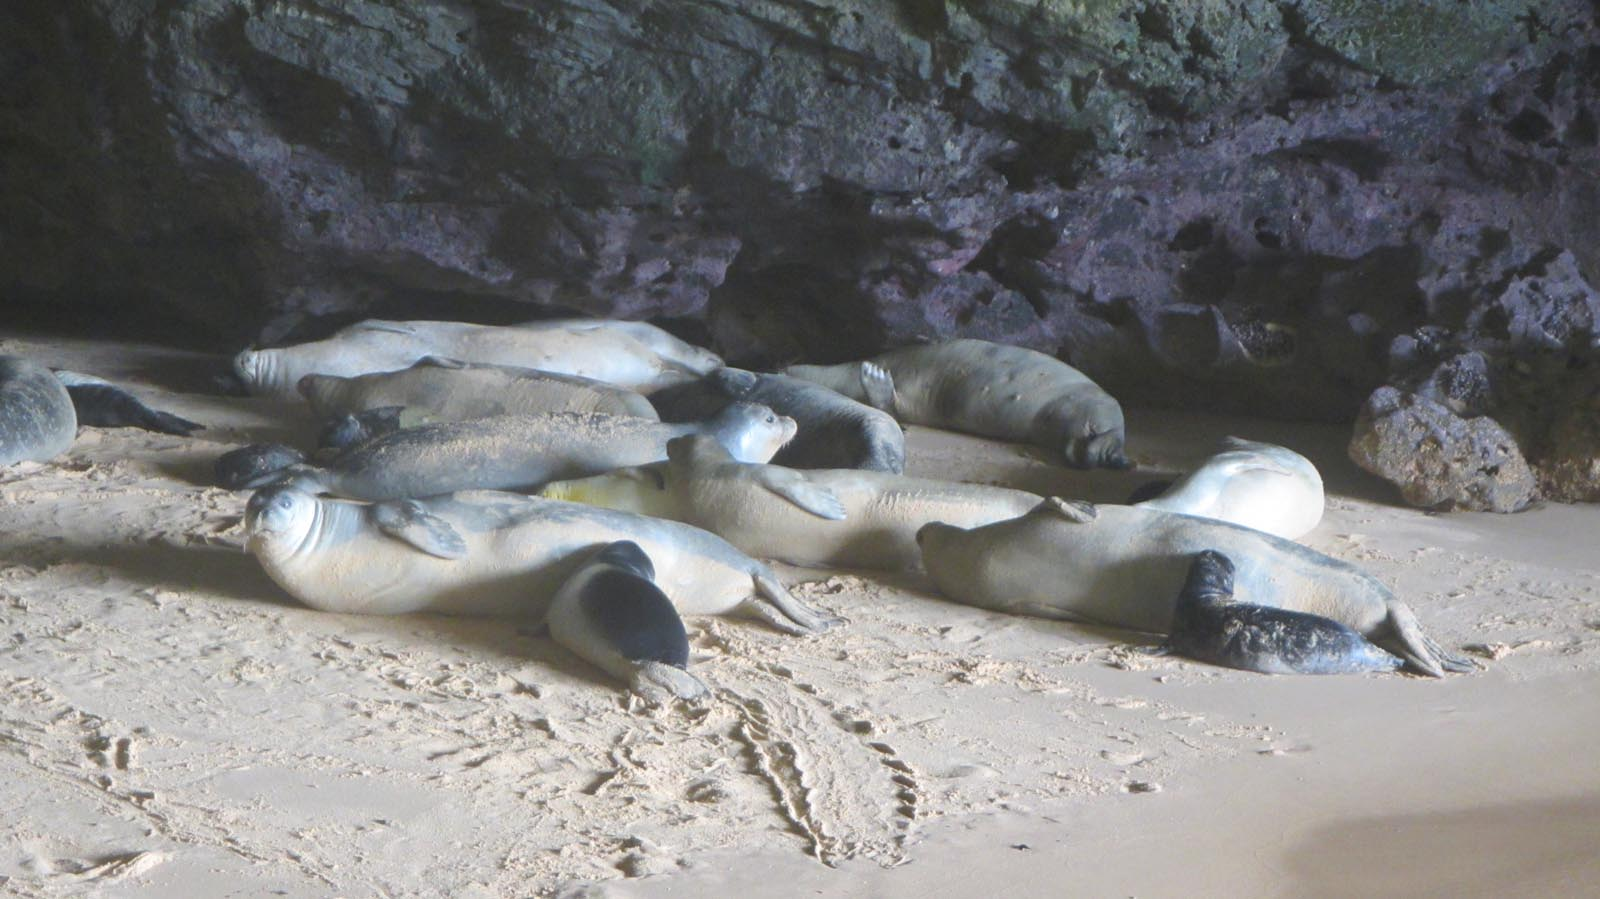 Resounding success in 2015: 73 monk seal pups born in Mauritania